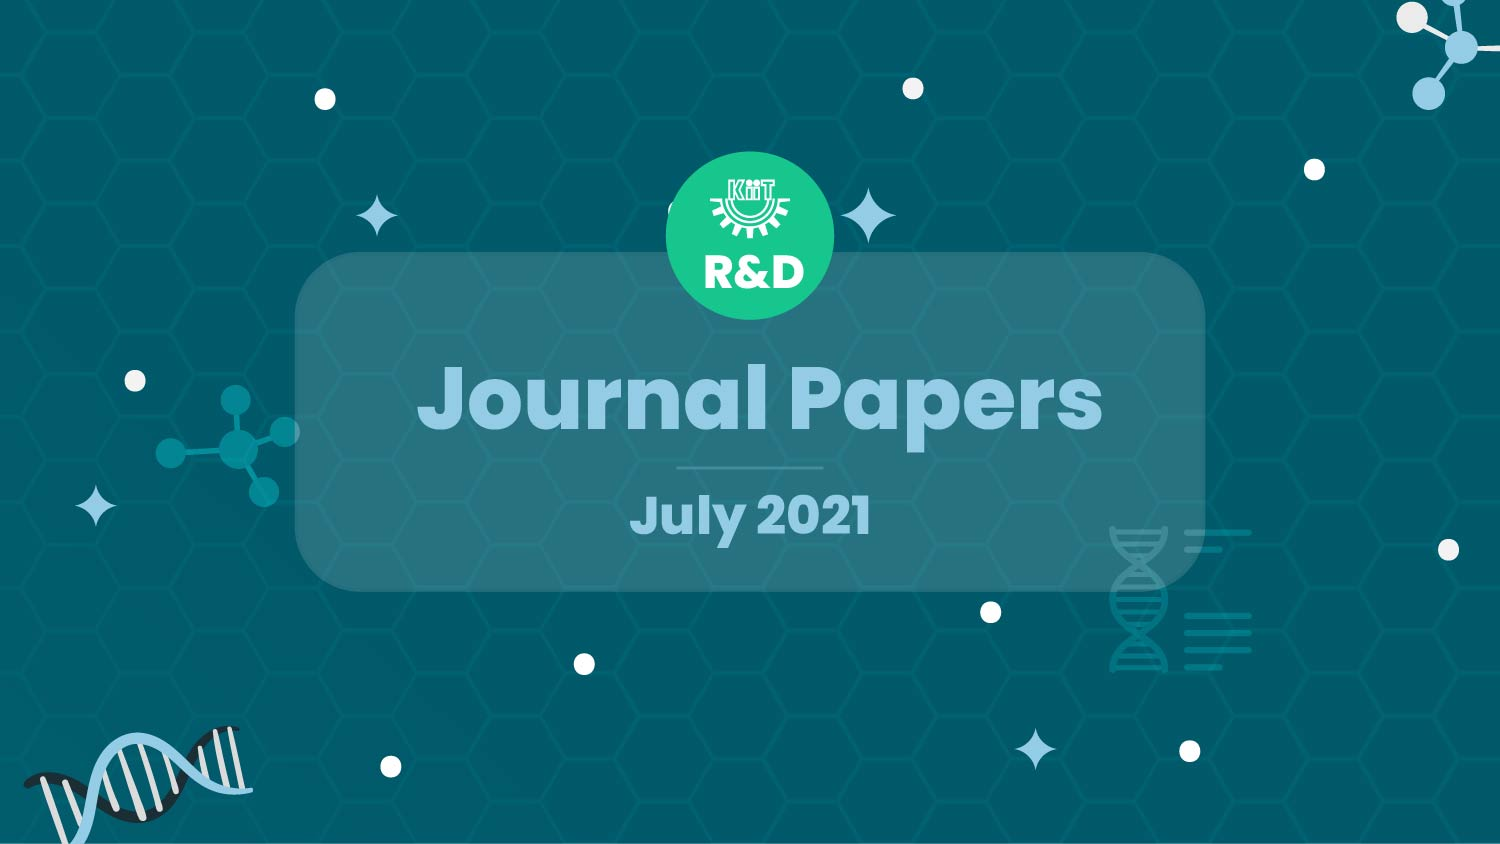 KIIT R&D Research and Development-Journal Papers